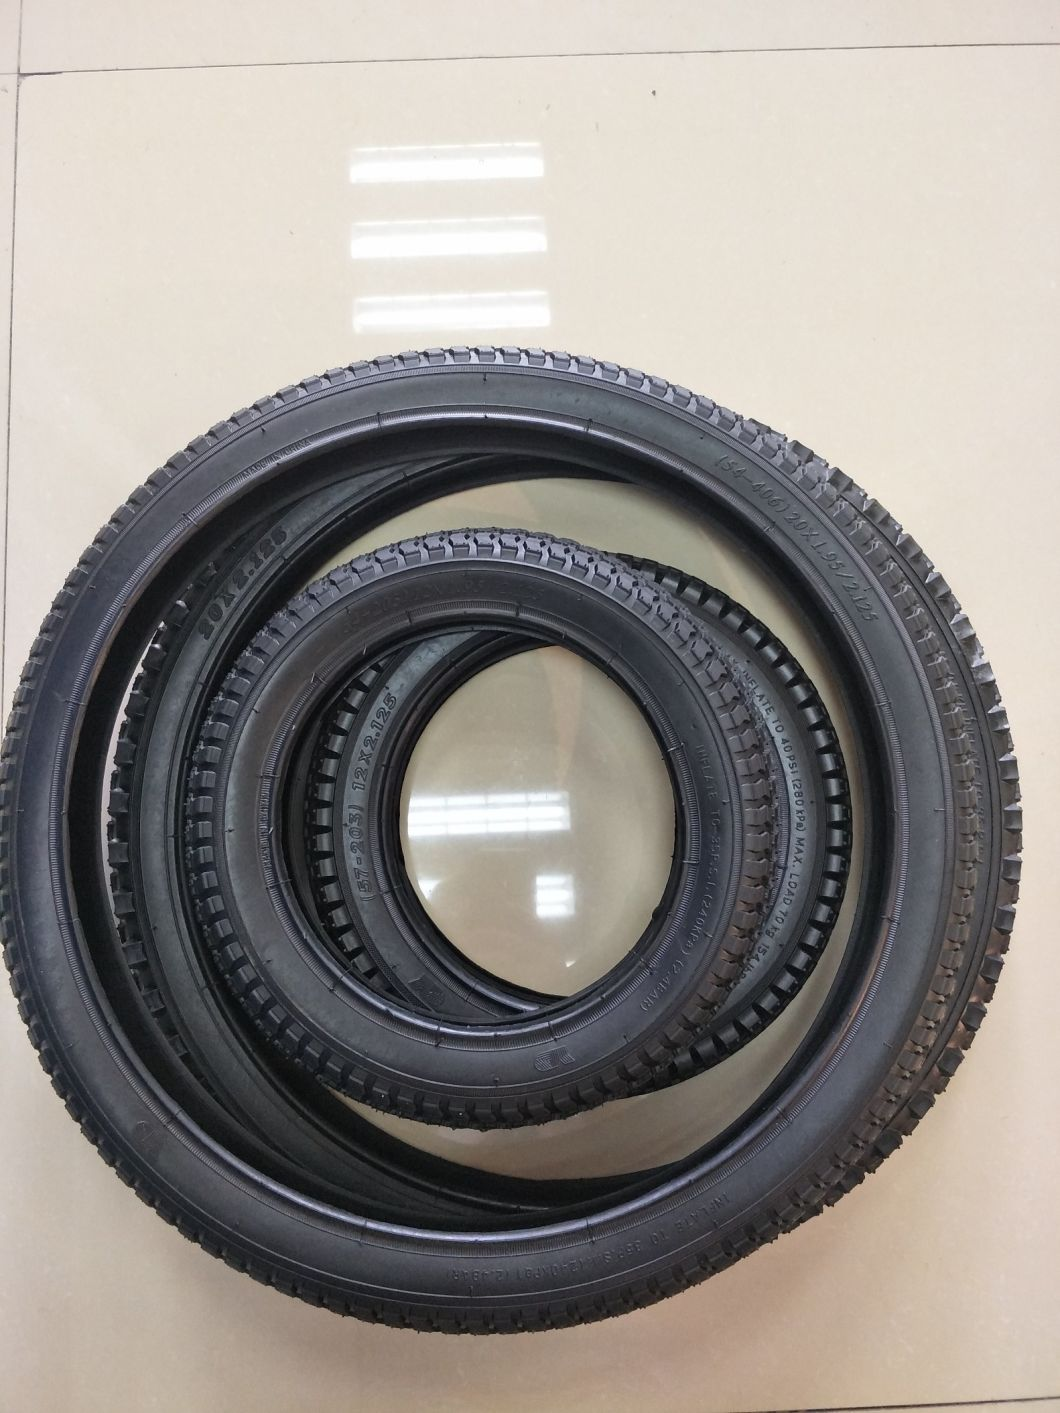 16*1.75 Bicycle Solid Tires 16 Inch Tires Bike Tires 16X1.75 High Quality Rubber Cycling Tyre